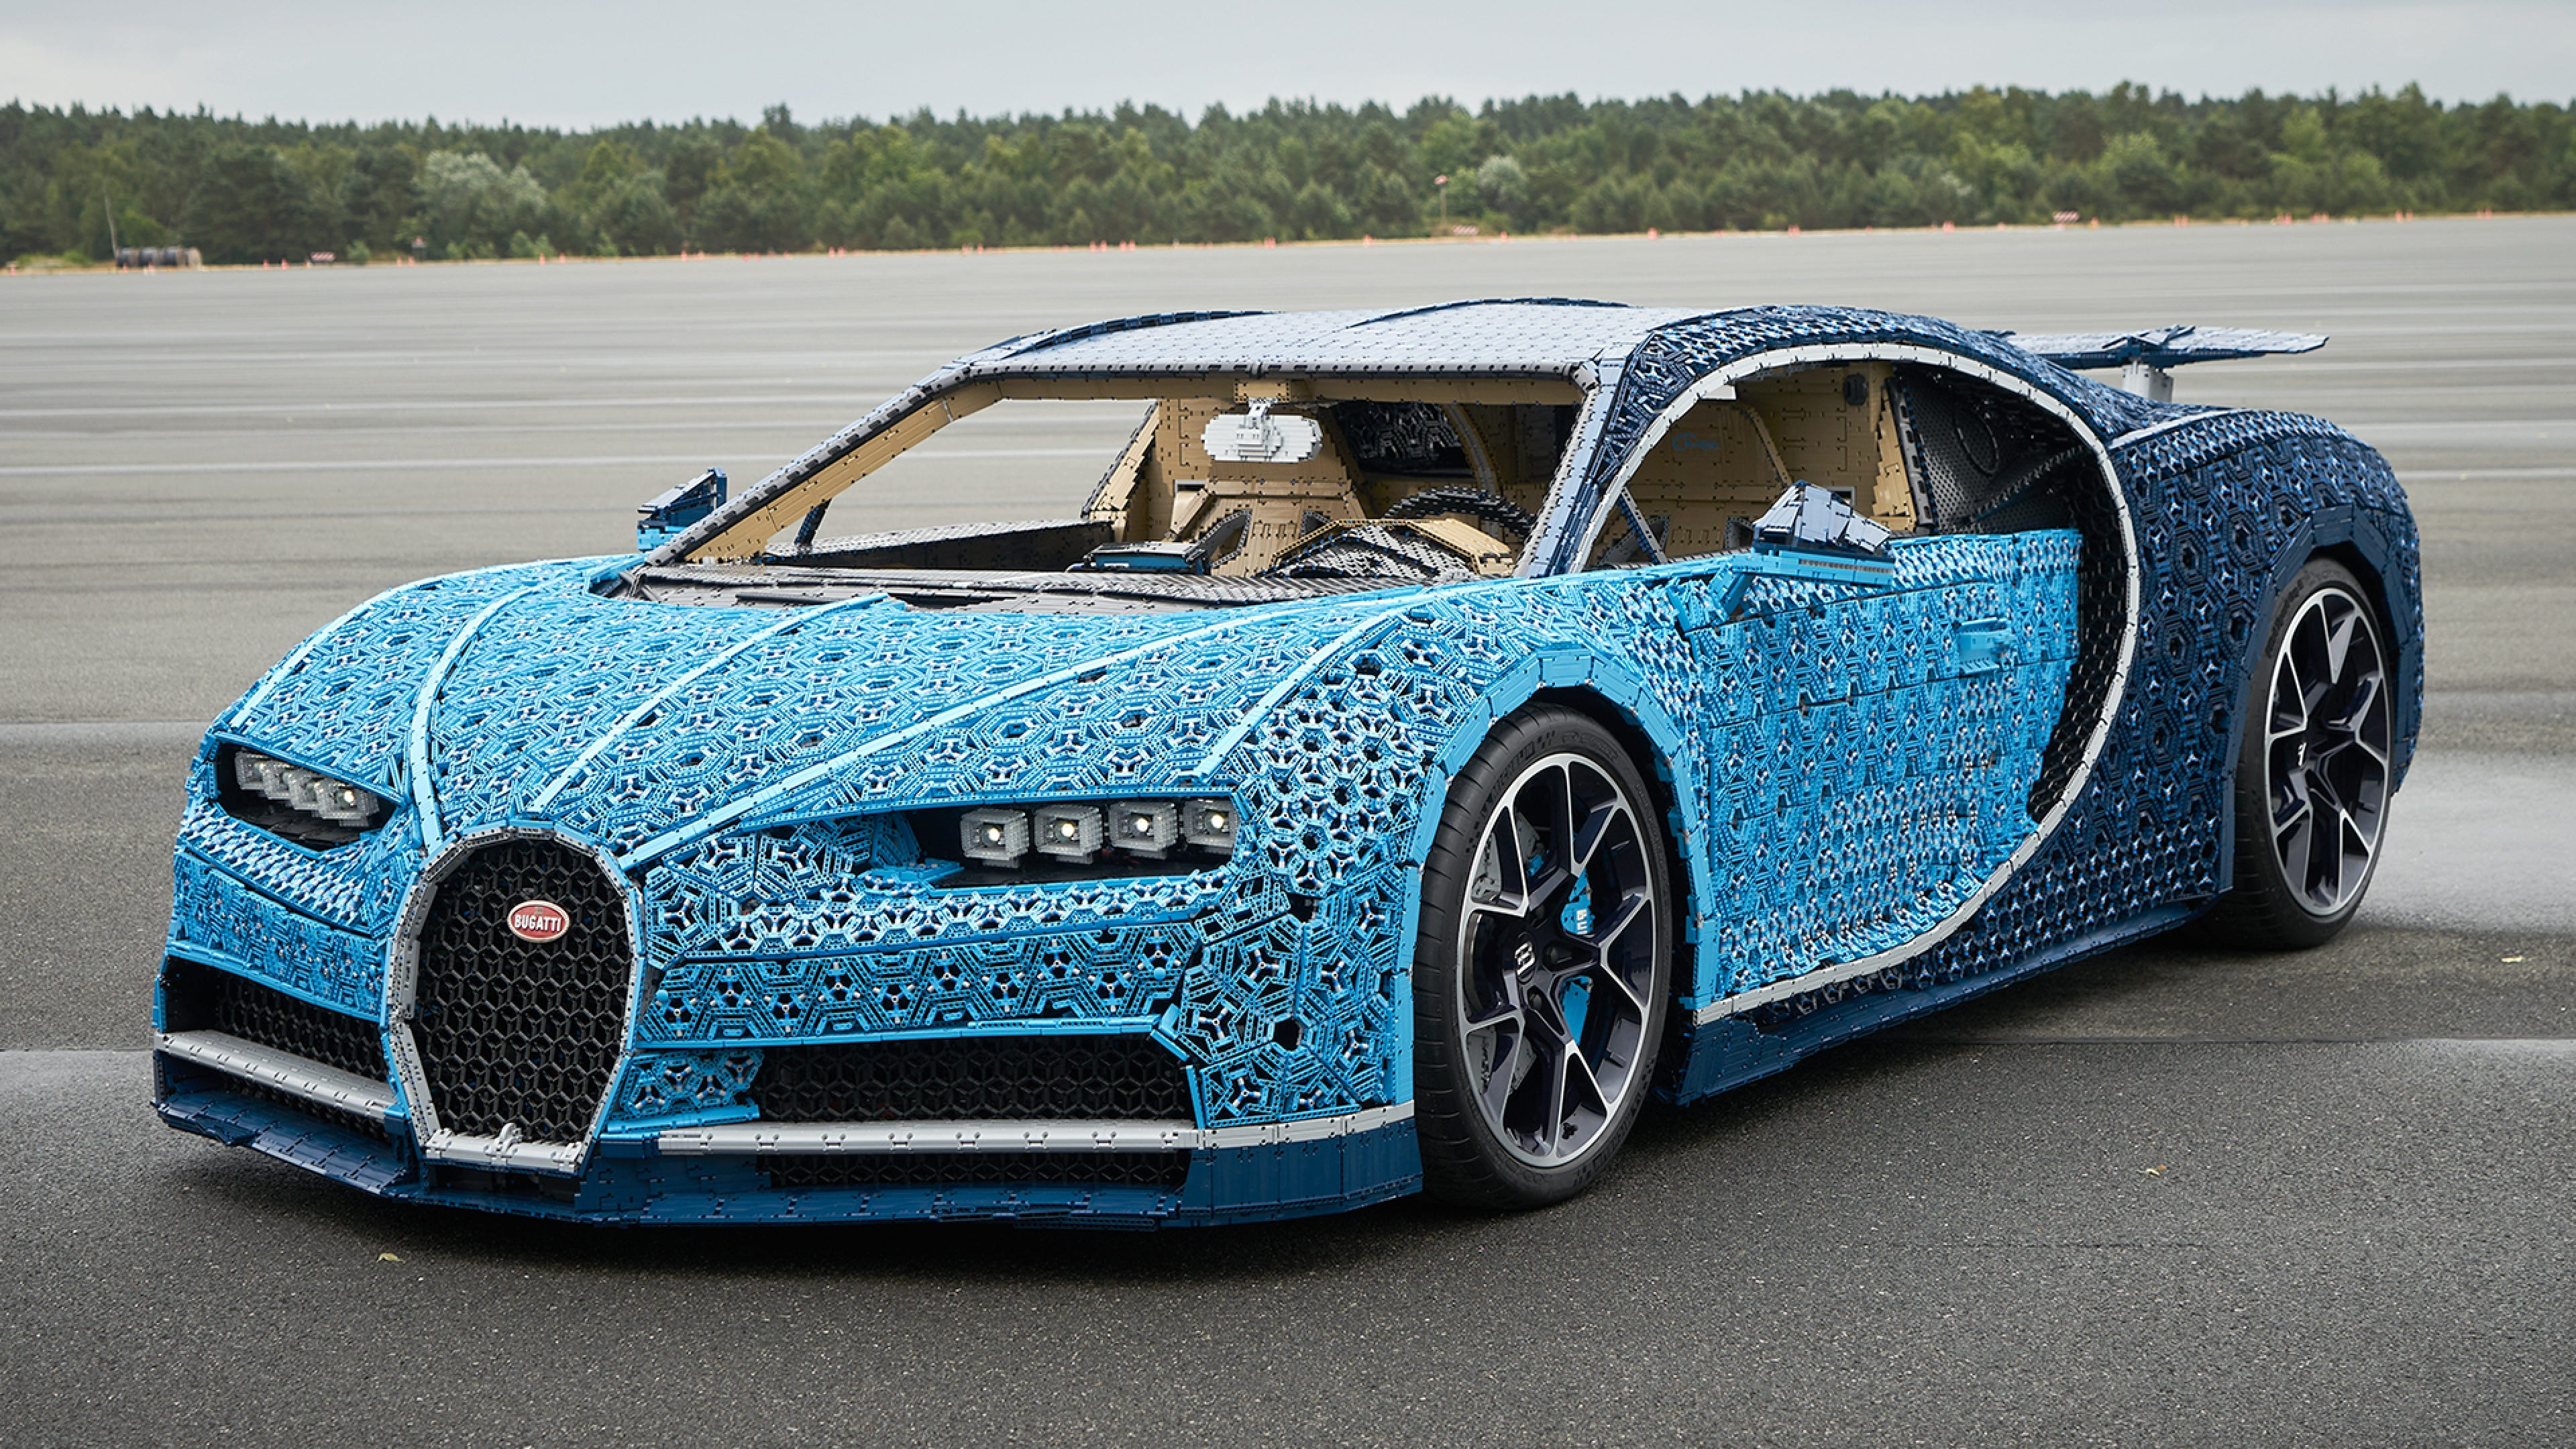 The Million Piece Lego Bugatti Can Reach A Top Sd Of Almost 19 Miles Per Hour Review Geek